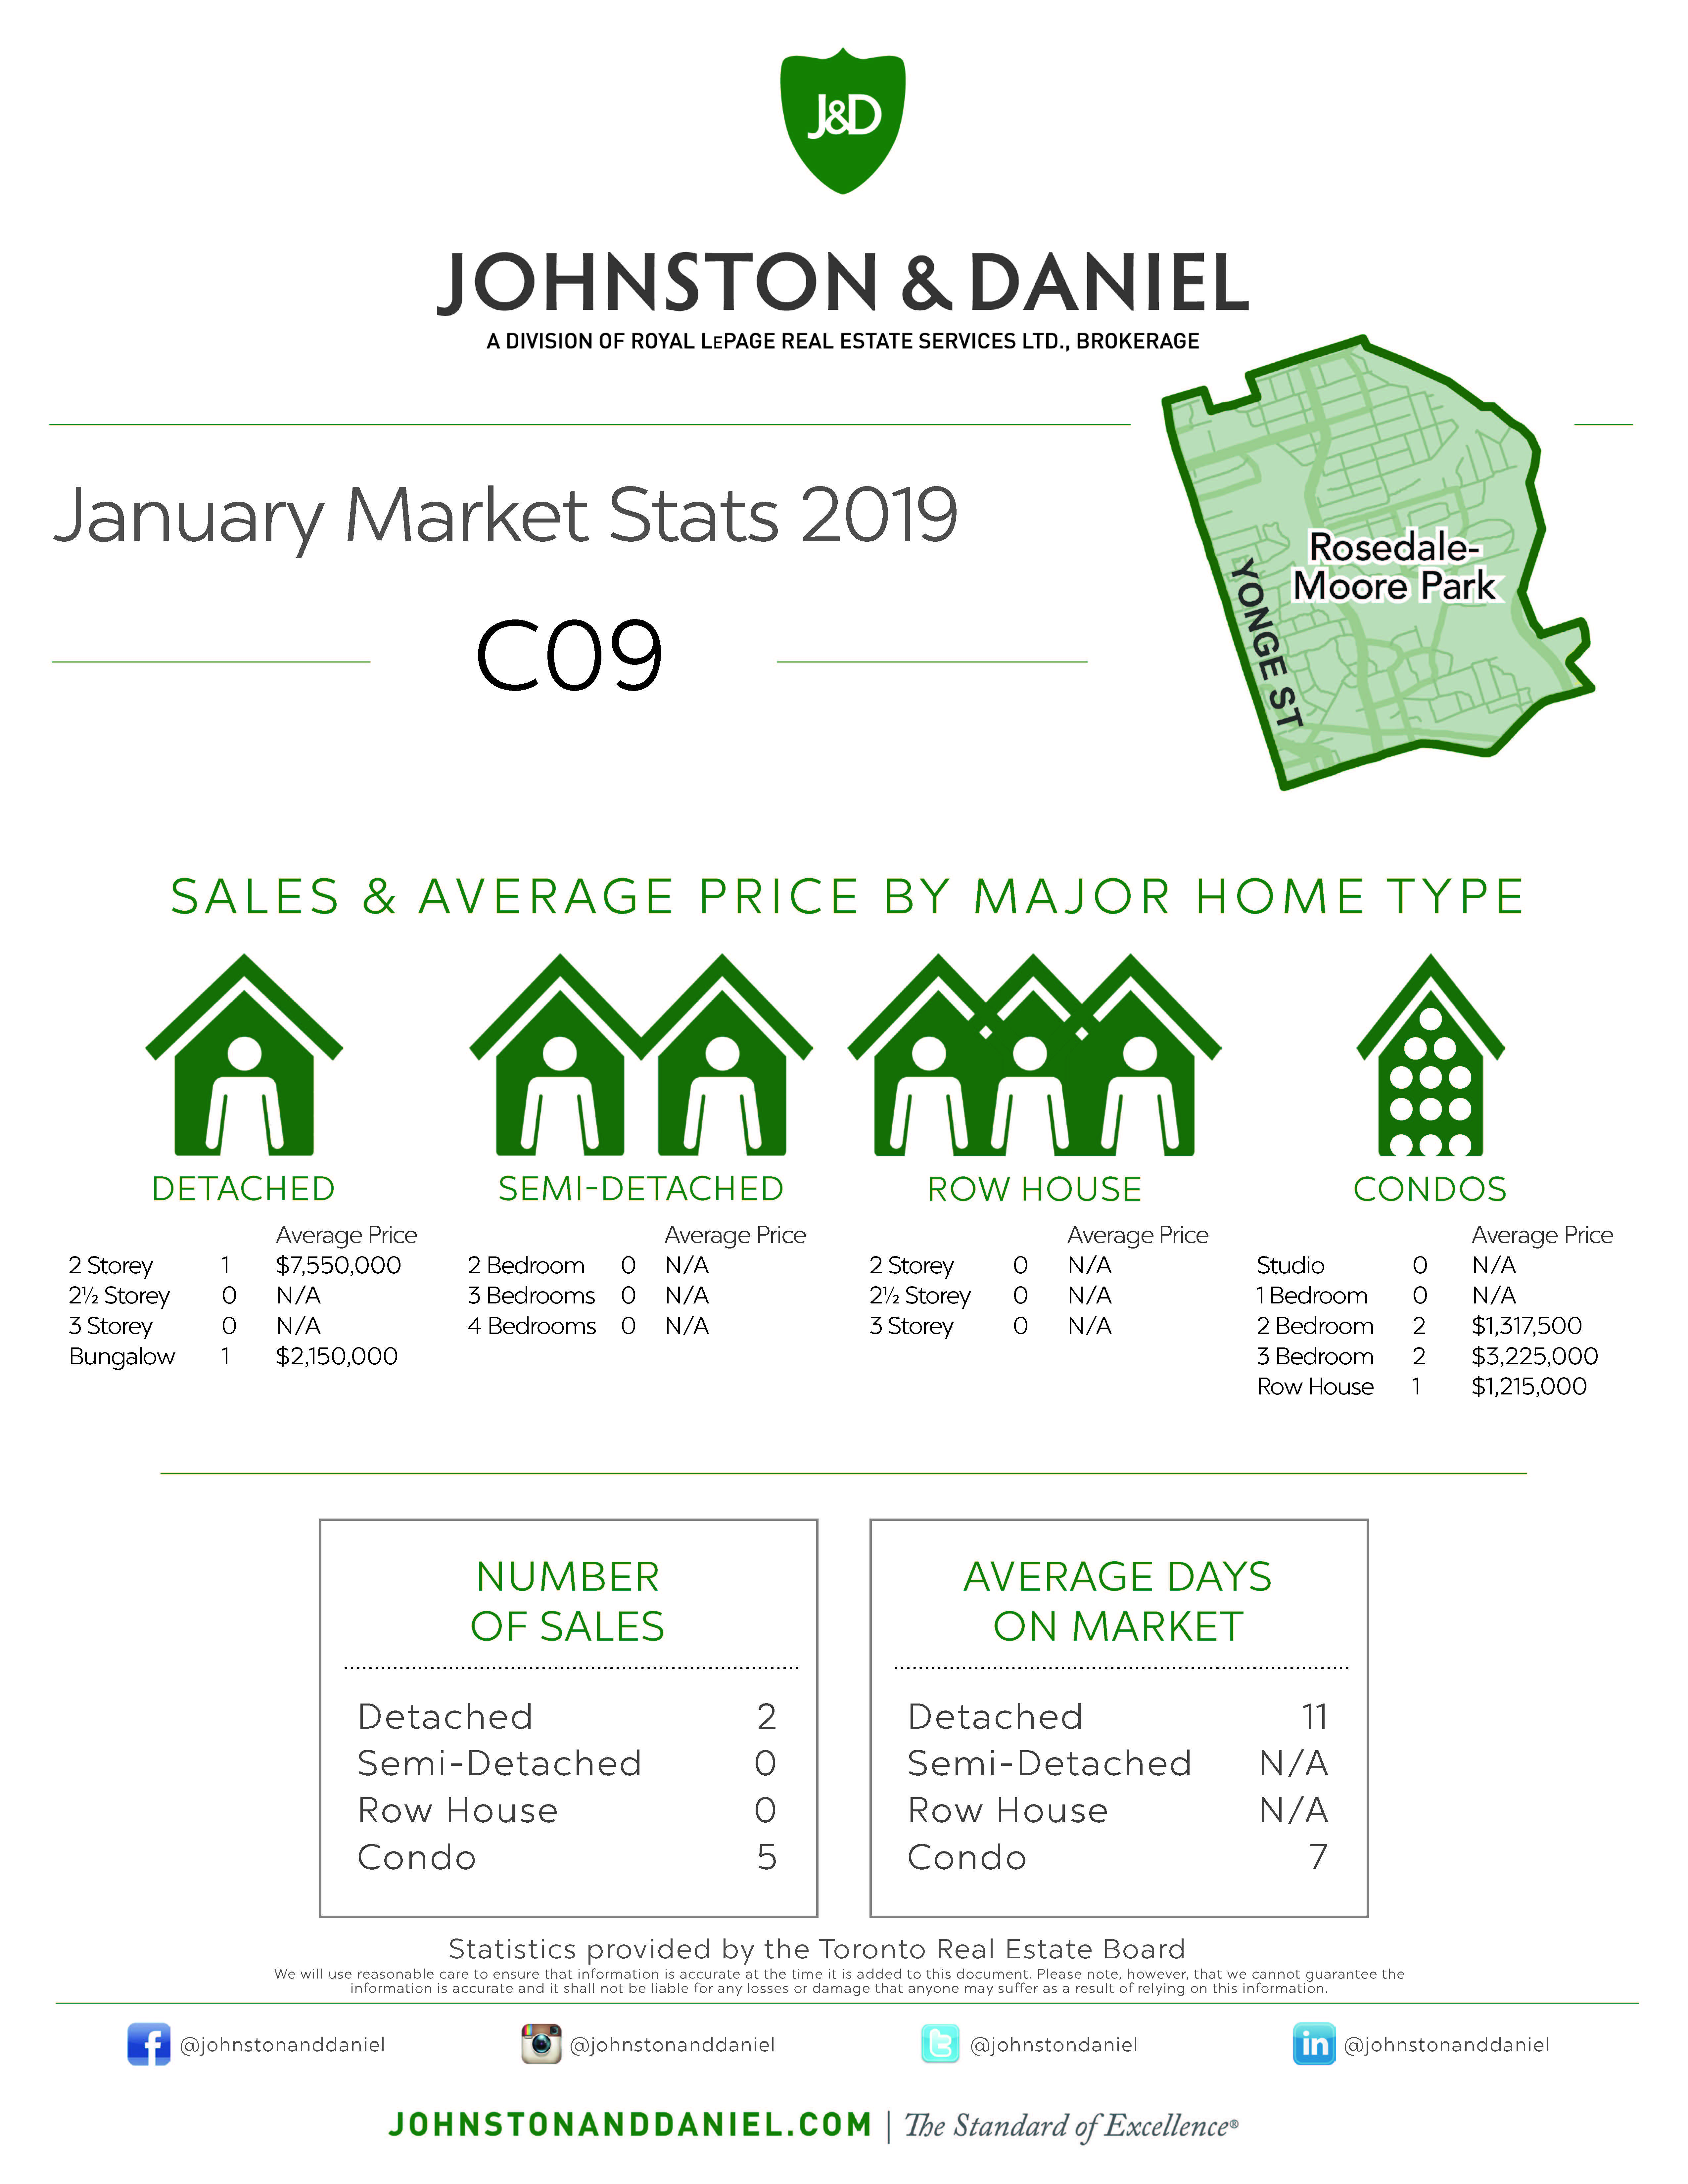 Toronto Real Estate Sales Statistics January 2019 for Area C09